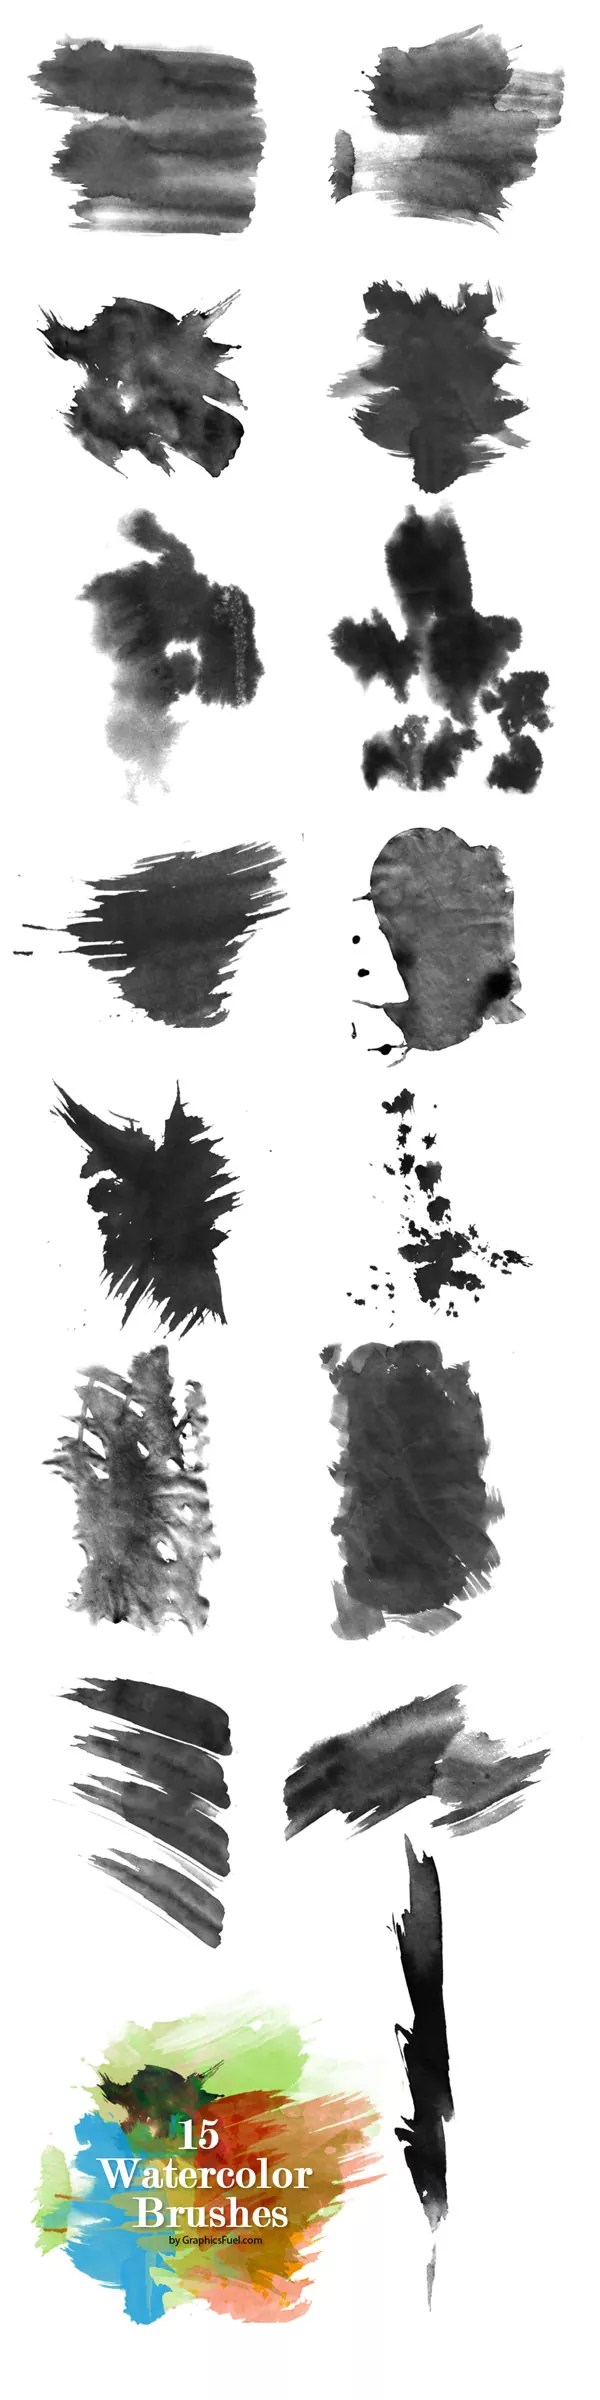 watercolor brushes preview - Free Ink and Watercolor Brush Sets for Photoshop